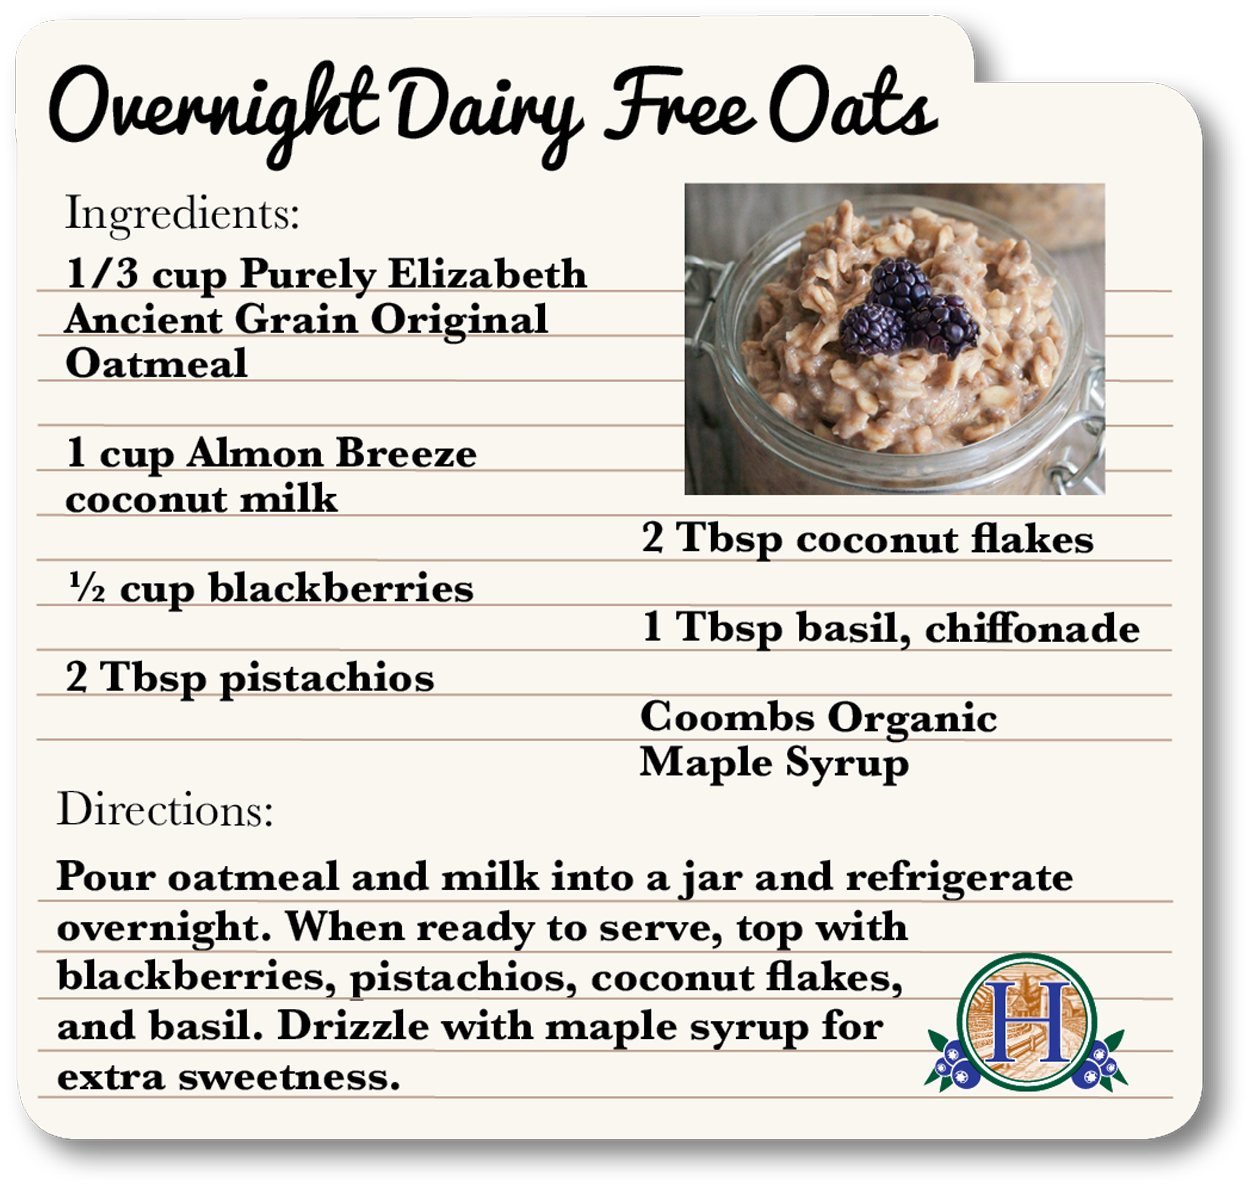 Overnight-Dairy-Free-Oats.png